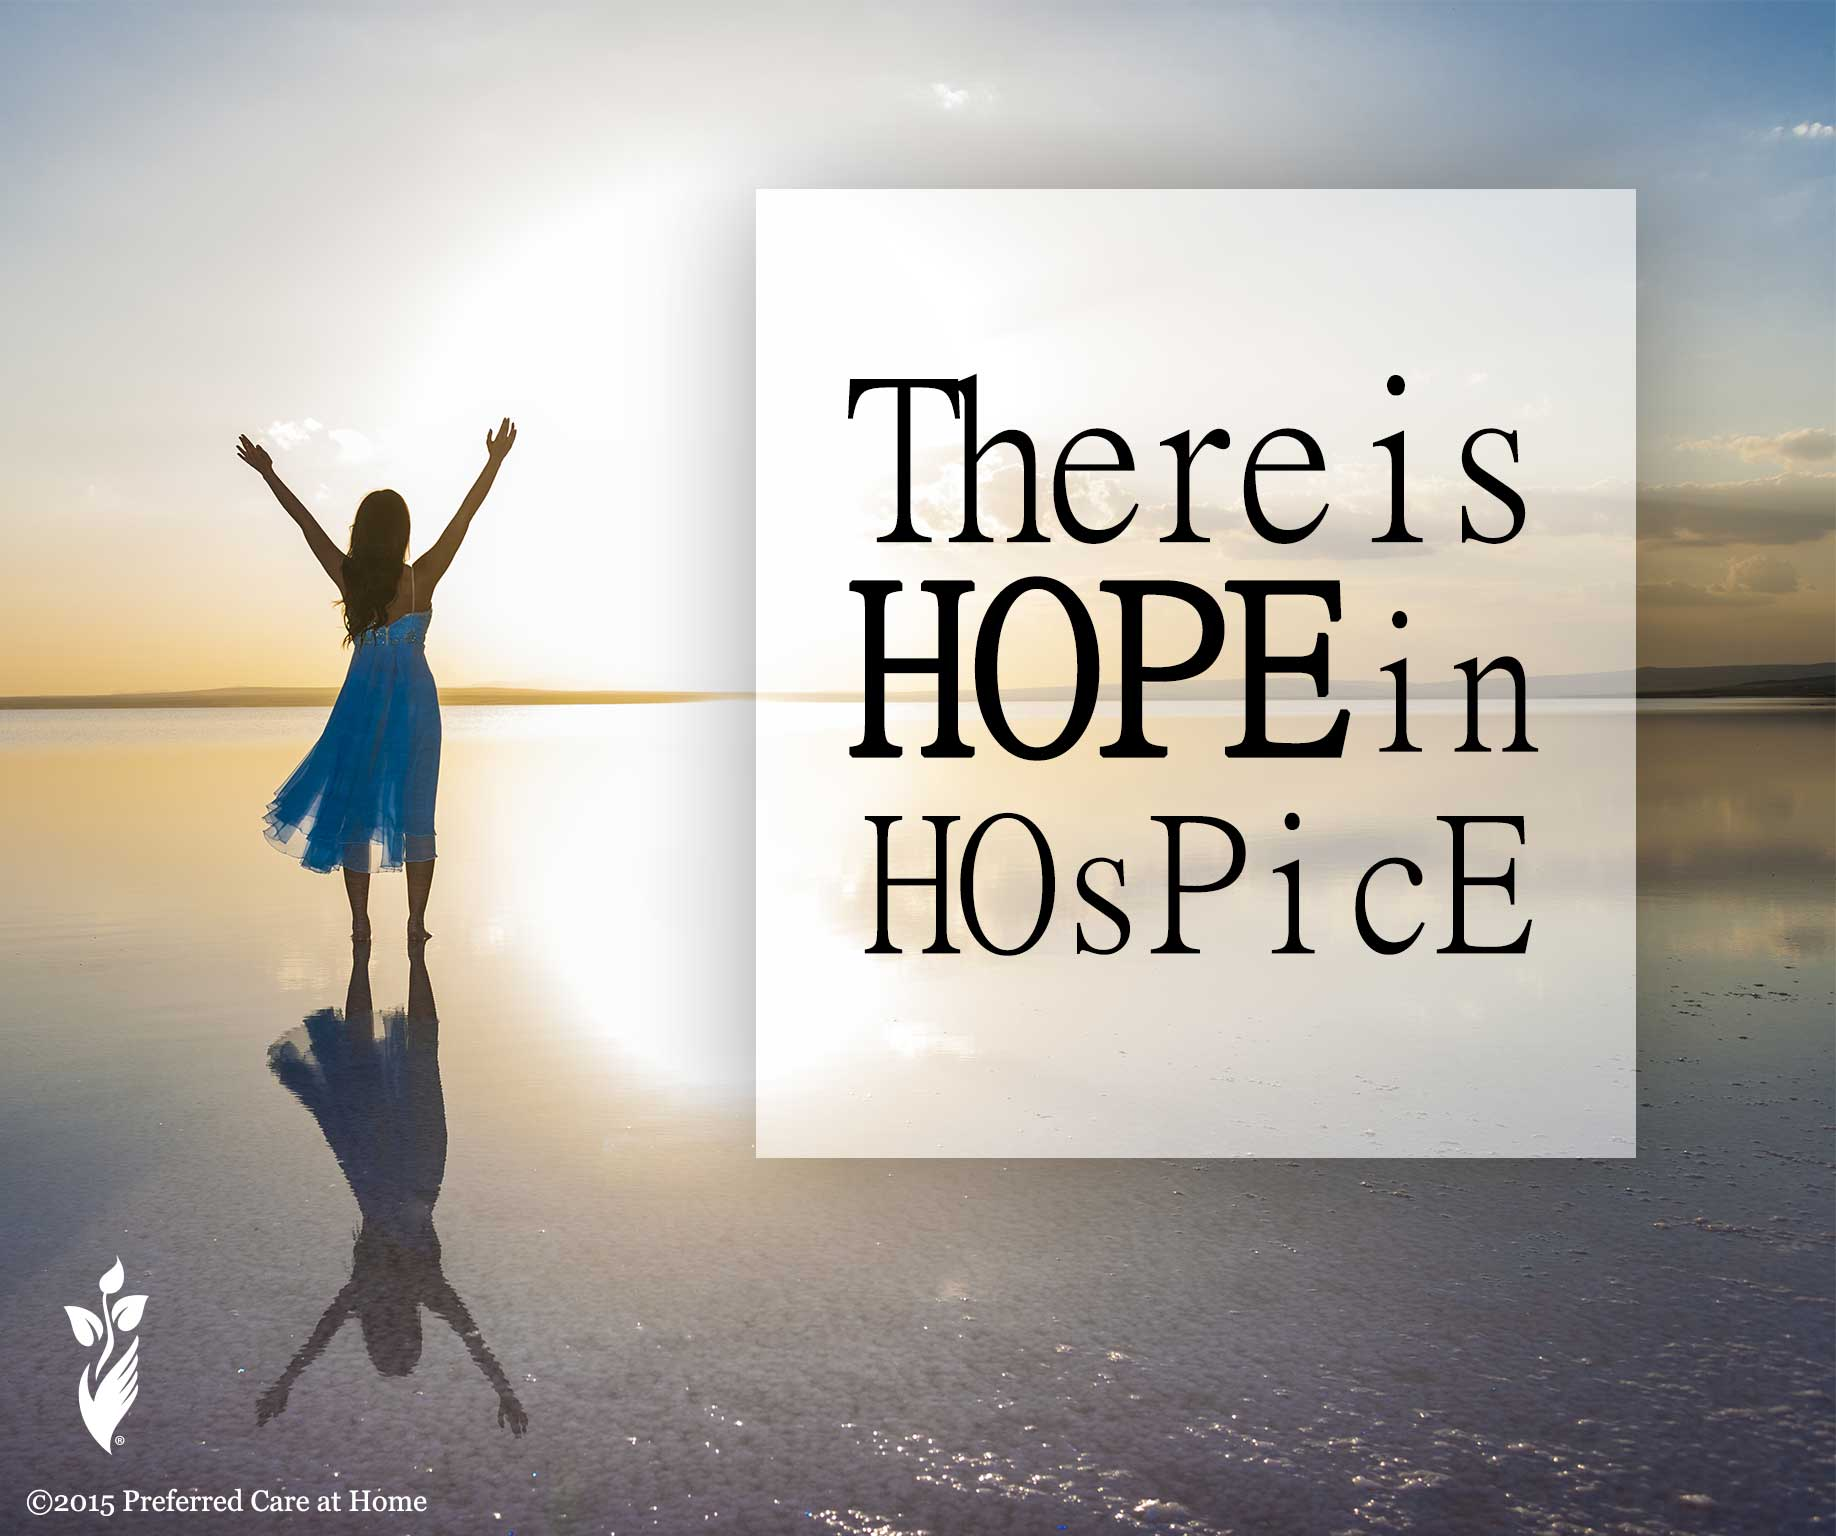 There is HOPE in HOsPicE